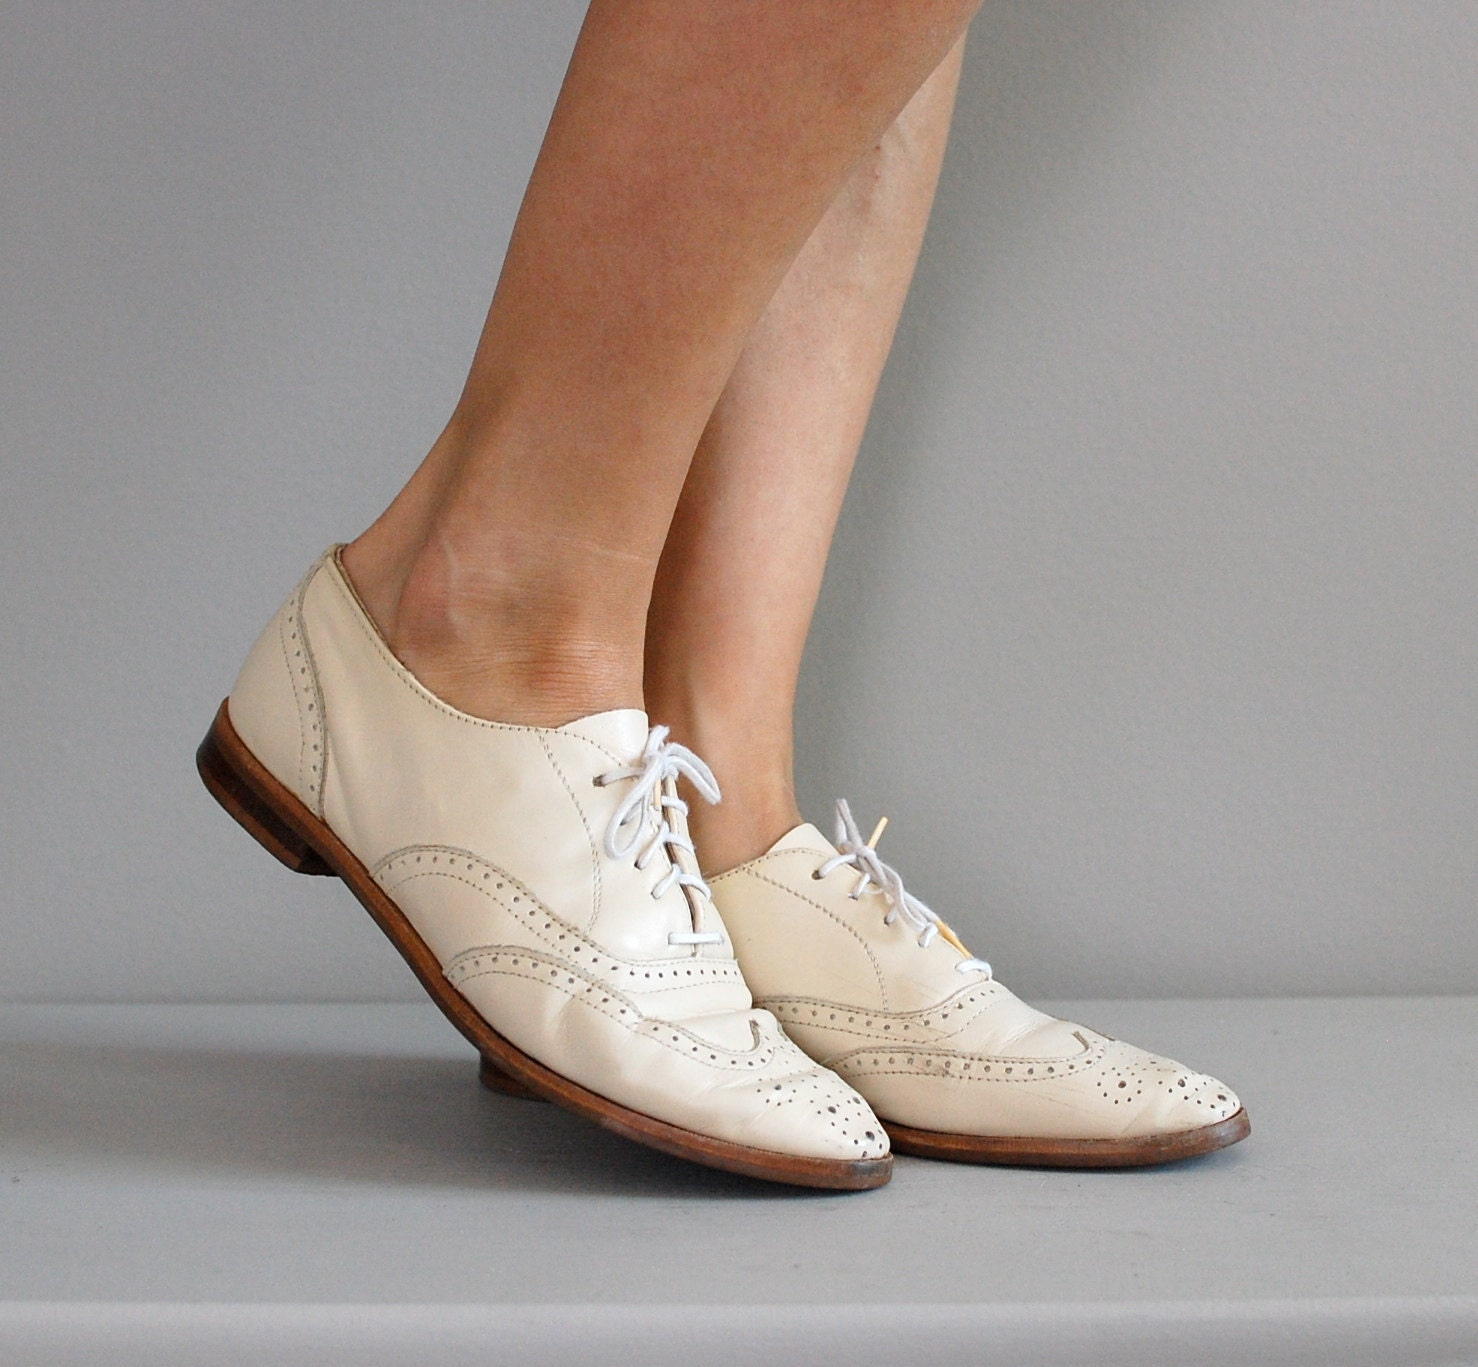 Cream Oxford Heels! - Cream Oxford Style Heels by N.Y.L.A! *Lightly Pre-loved *Size *Cork Heel *Great for all seasons!